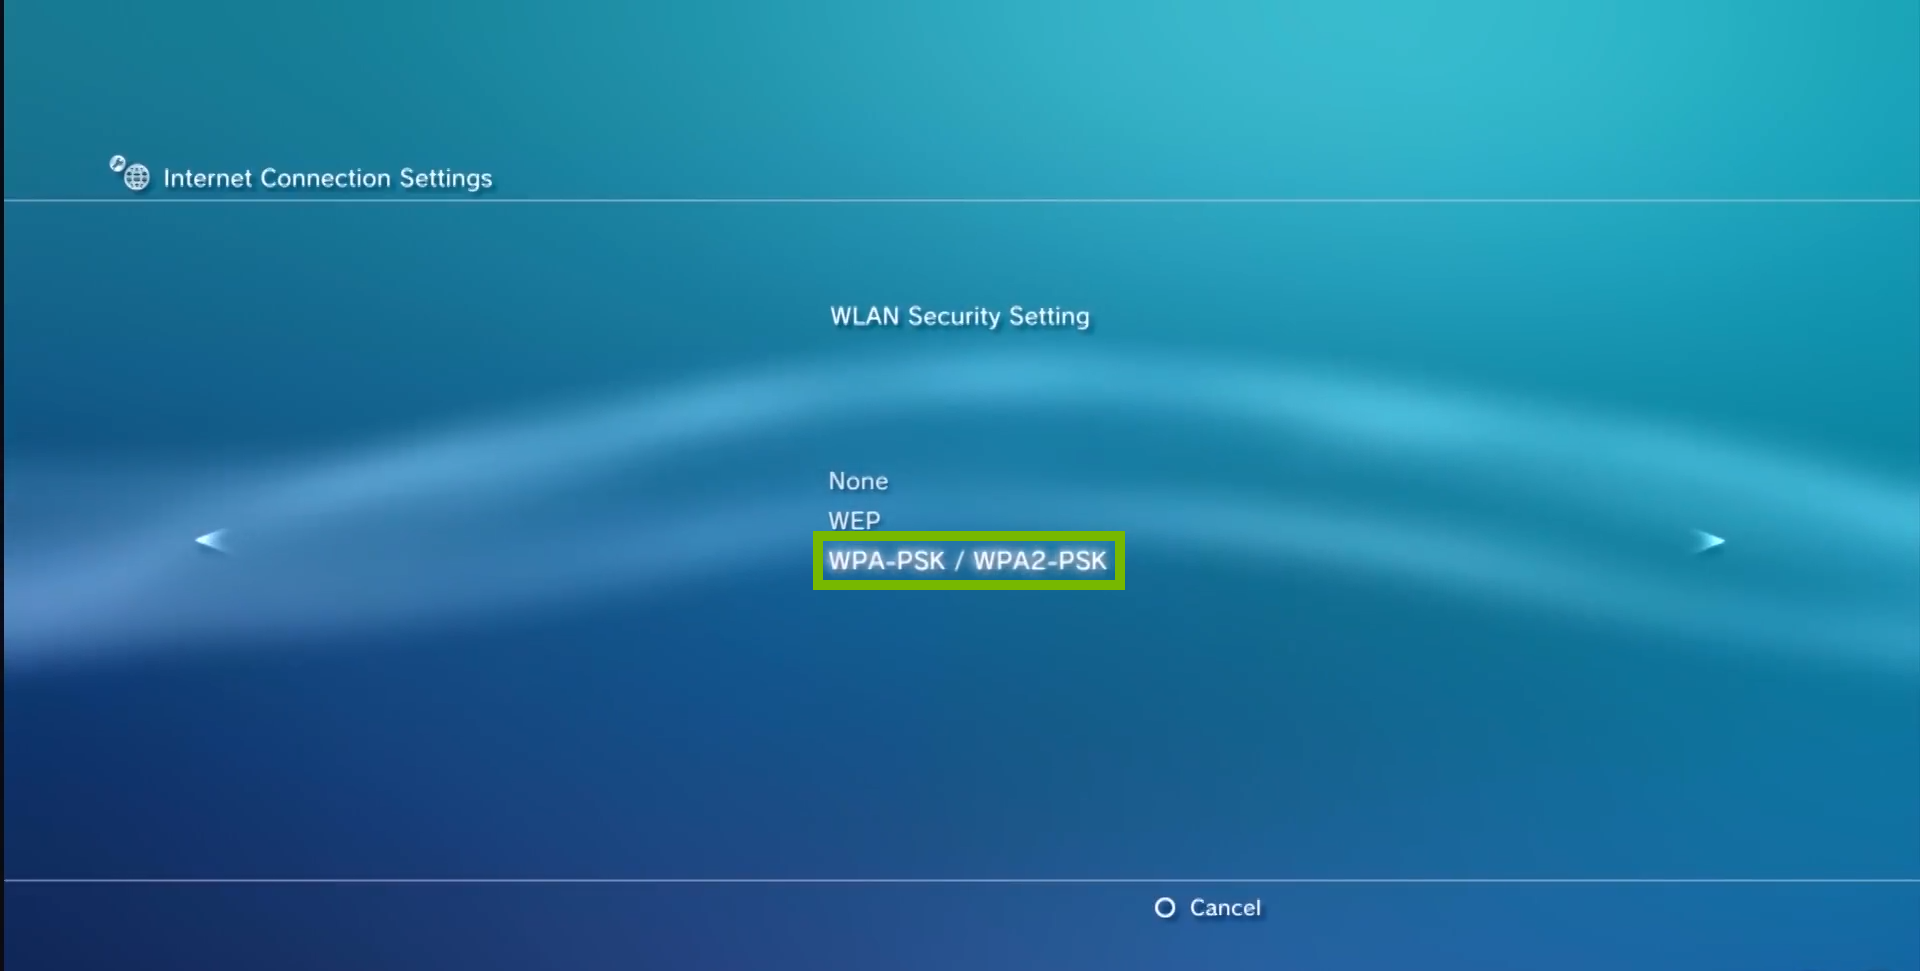 wlan security setting with WPA/PSK and WPA2/PSK highlighted